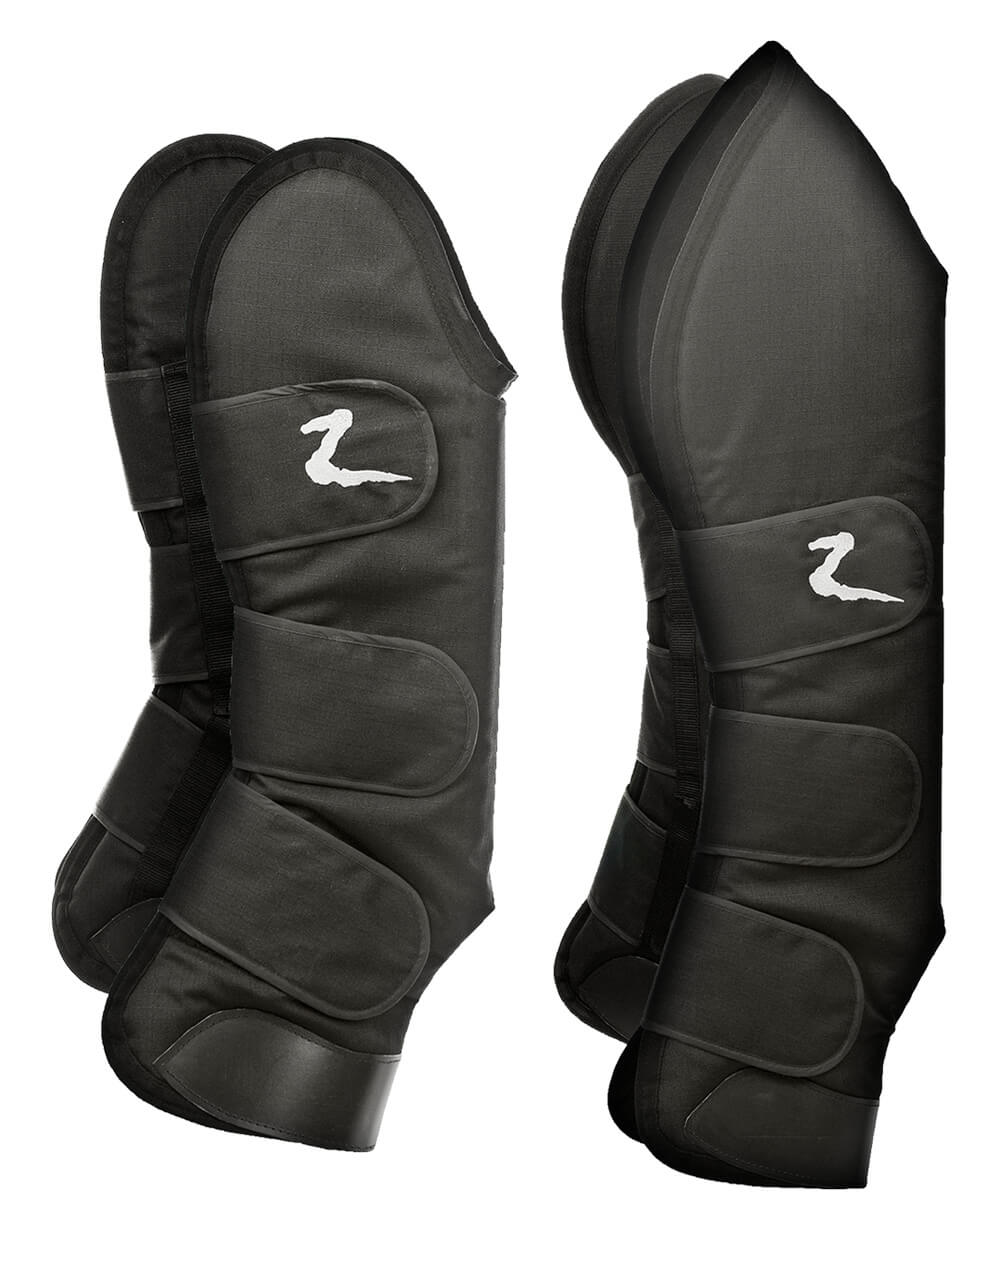 Durable and tough horse transport boots for travelling, reinforced at bottom, soft fleece padding on inside and strong velcro straps for a secure fit